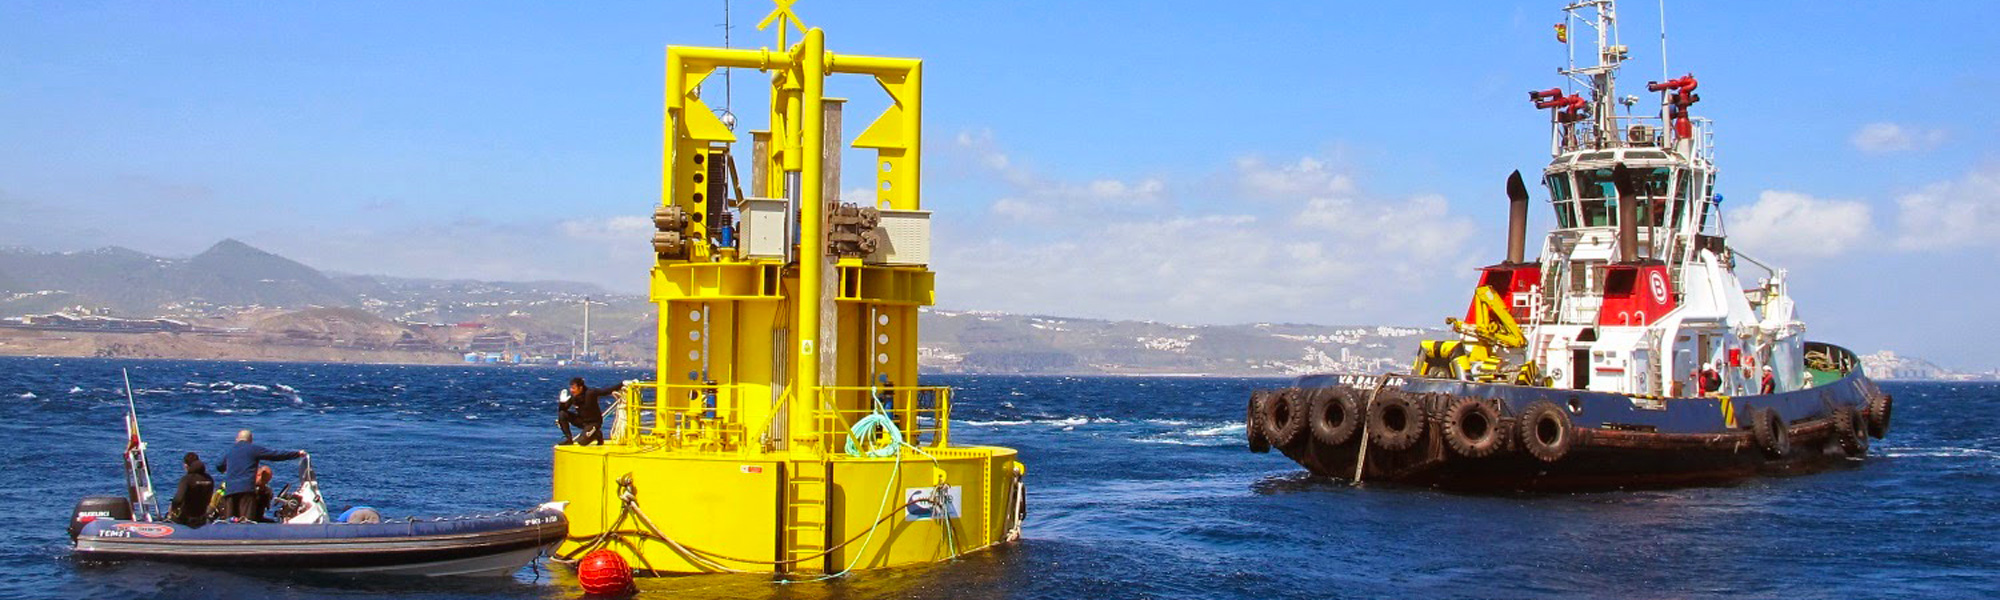 Wave energy converter developed by UNDIGEN project consortium led by Global Wedge